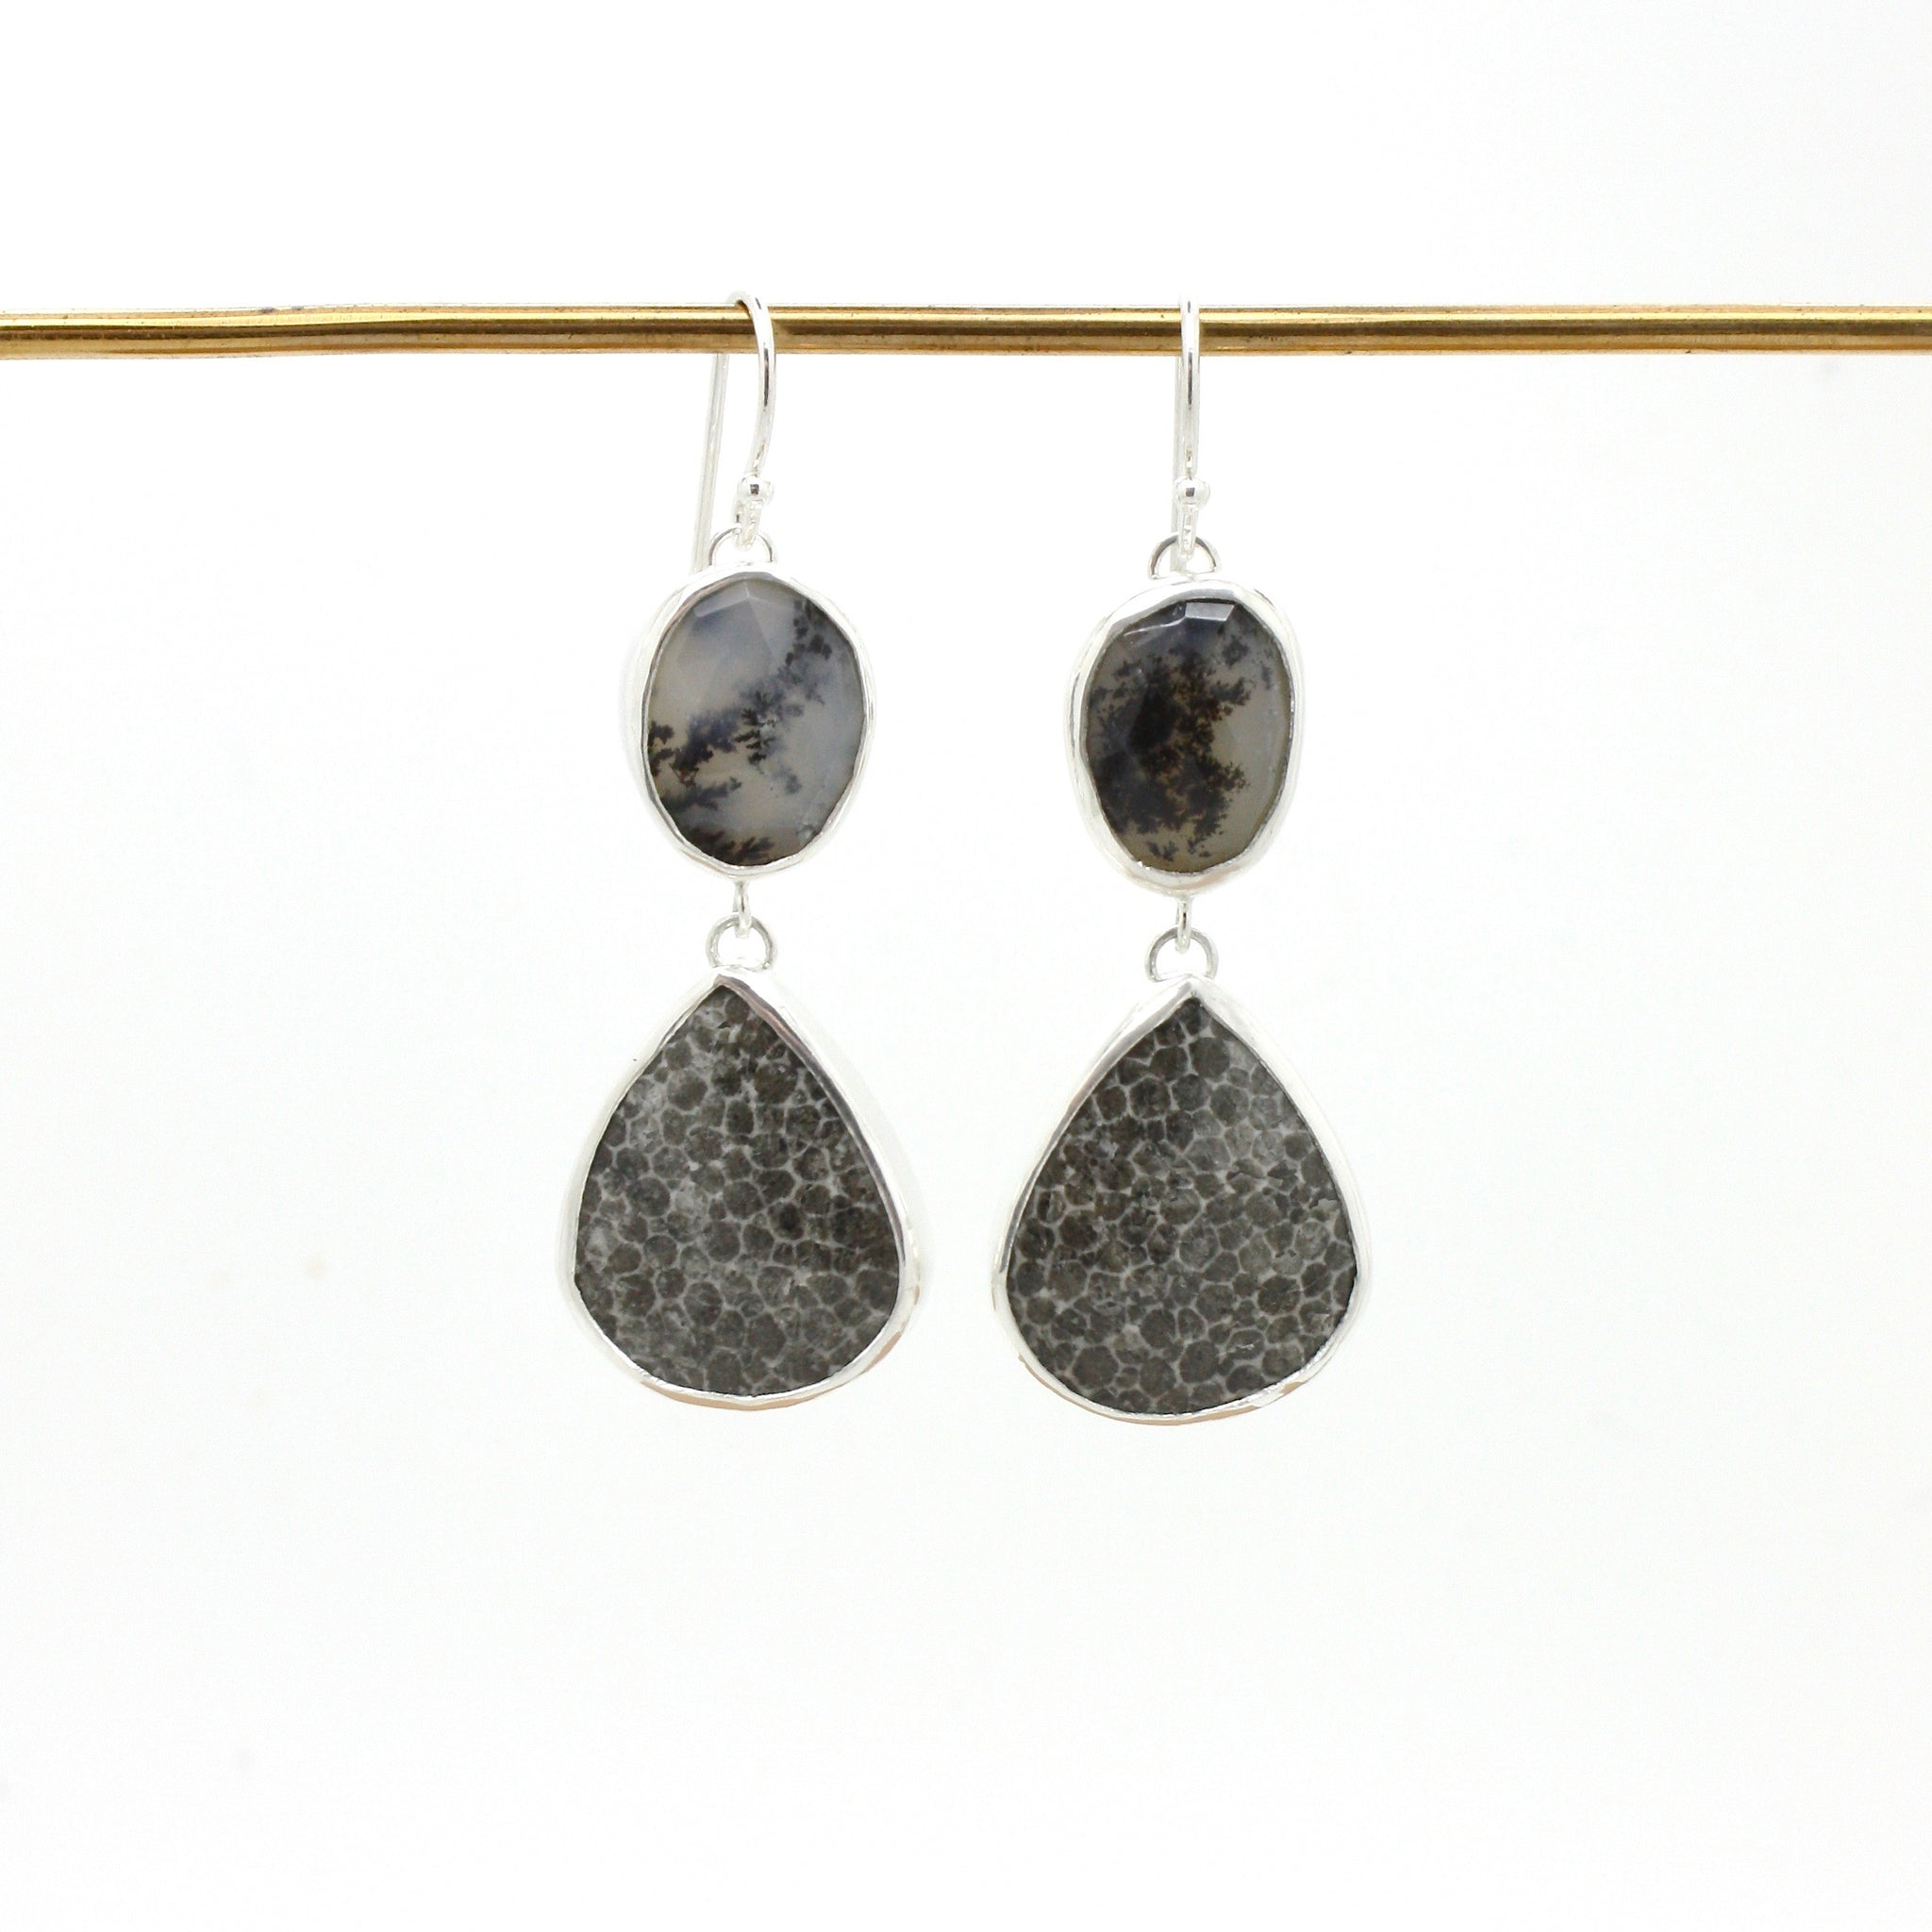 Dendritic Opal and Fossilized Coral Earrings